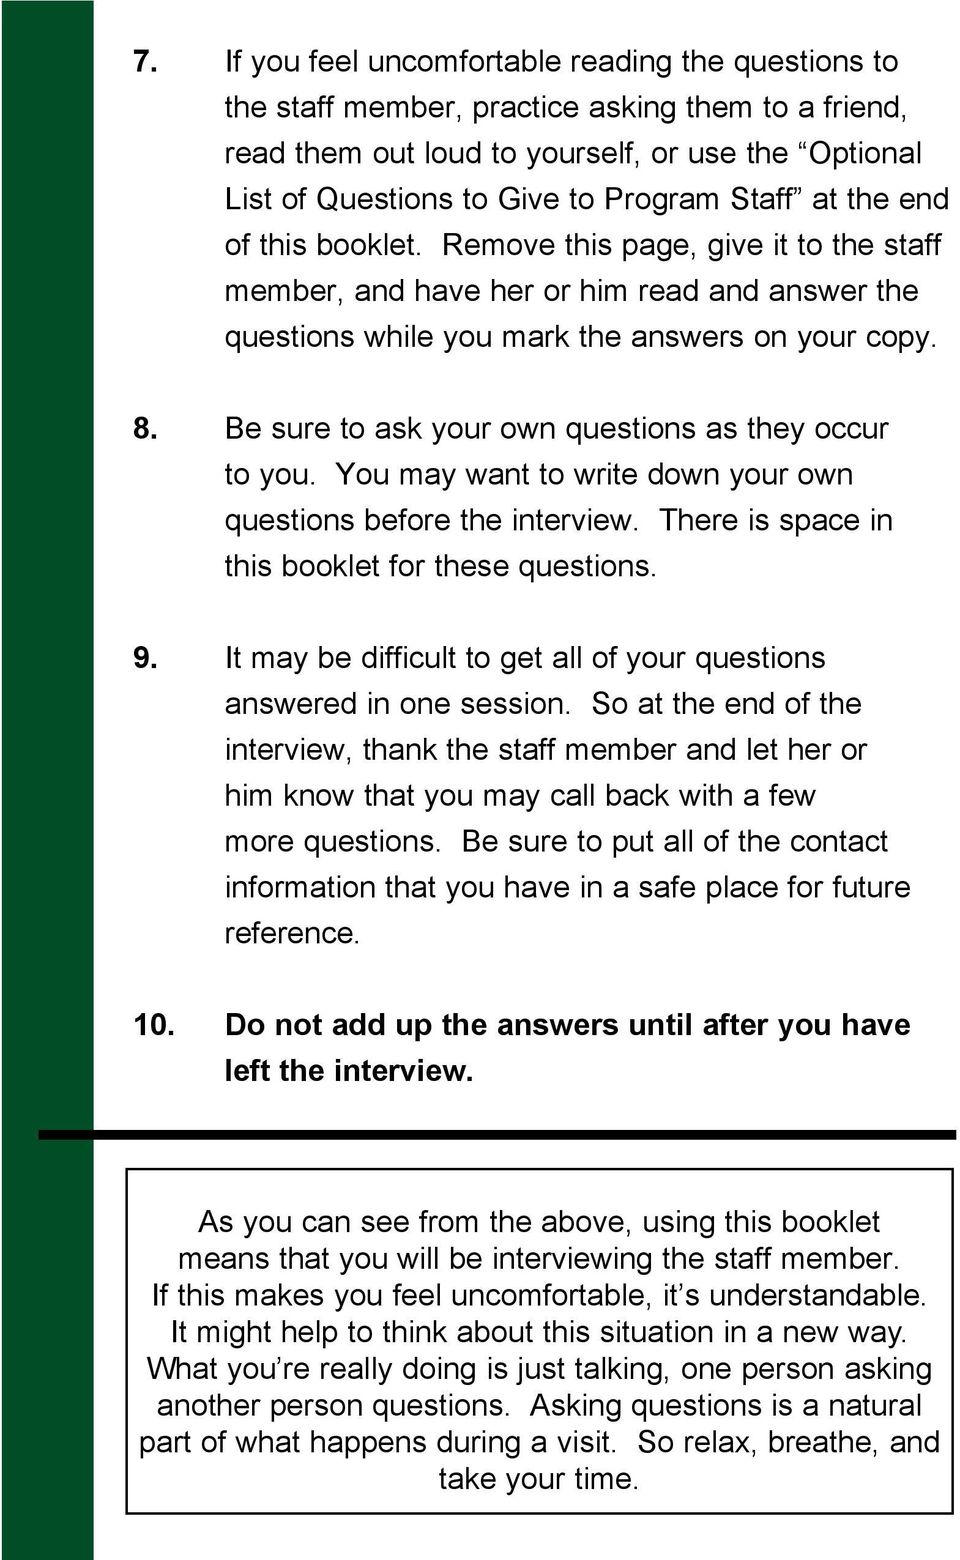 Be sure to ask your own questions as they occur to you. You may want to write down your own questions before the interview. There is space in this booklet for these questions. 9.